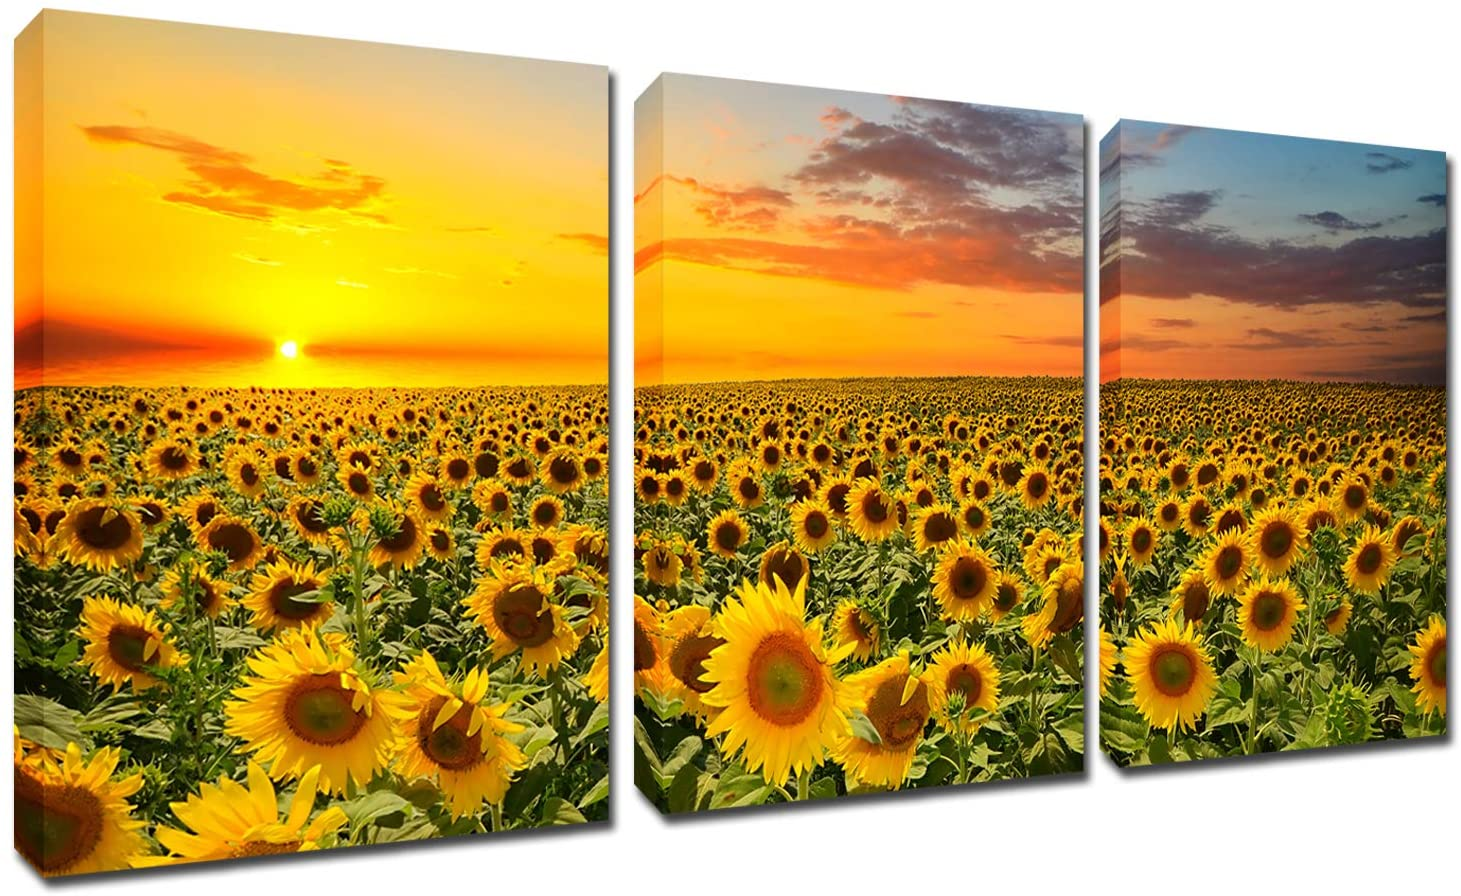 Sunflowers Painting Wall Art Canvas - Sunshine 3 Panles Framed Pictures Florals Giclee Prints Modern Home Decor Sunset Landscape Artwork Yellow Flowers for Living Room Kitchen Ready to Hang 12x16inch